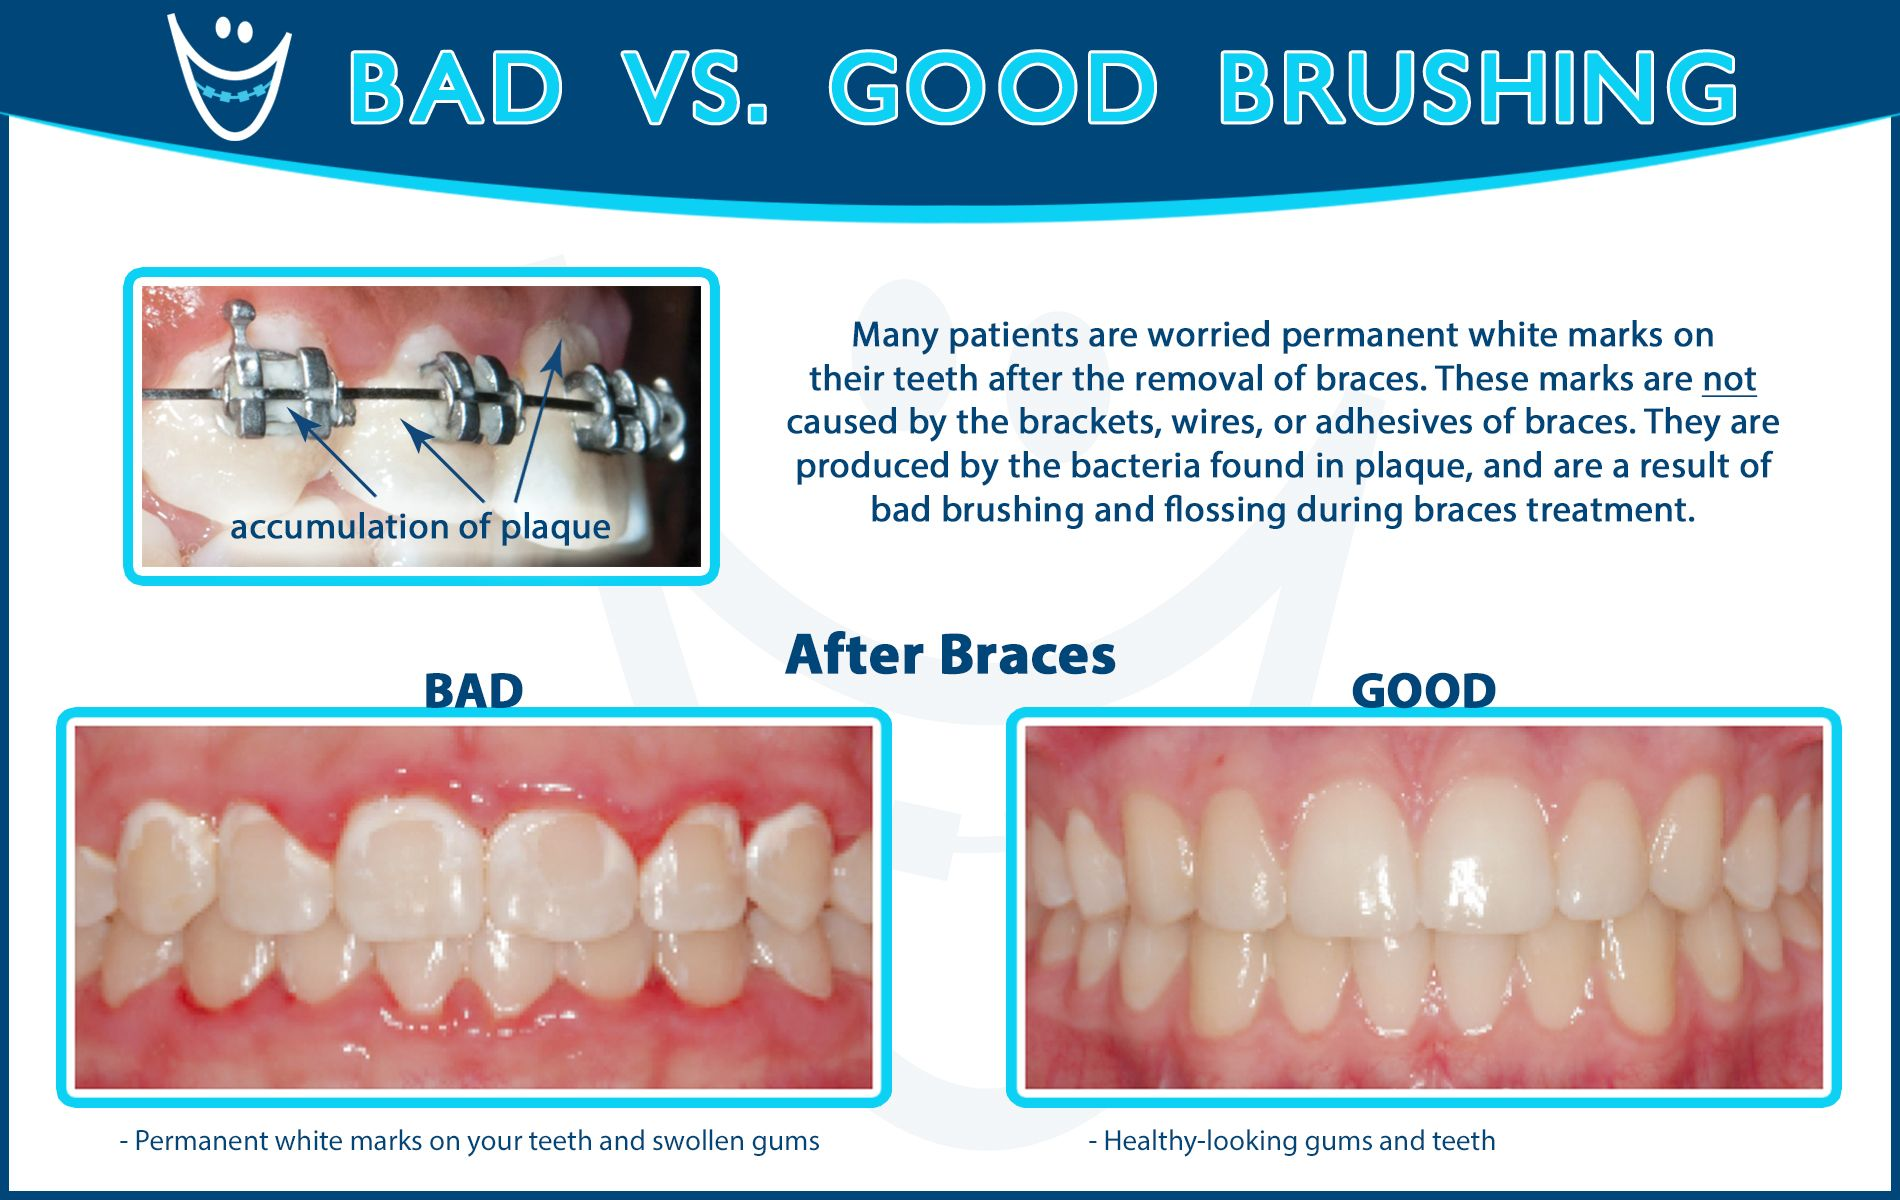 Good brushing and flossing is a VERY important part of